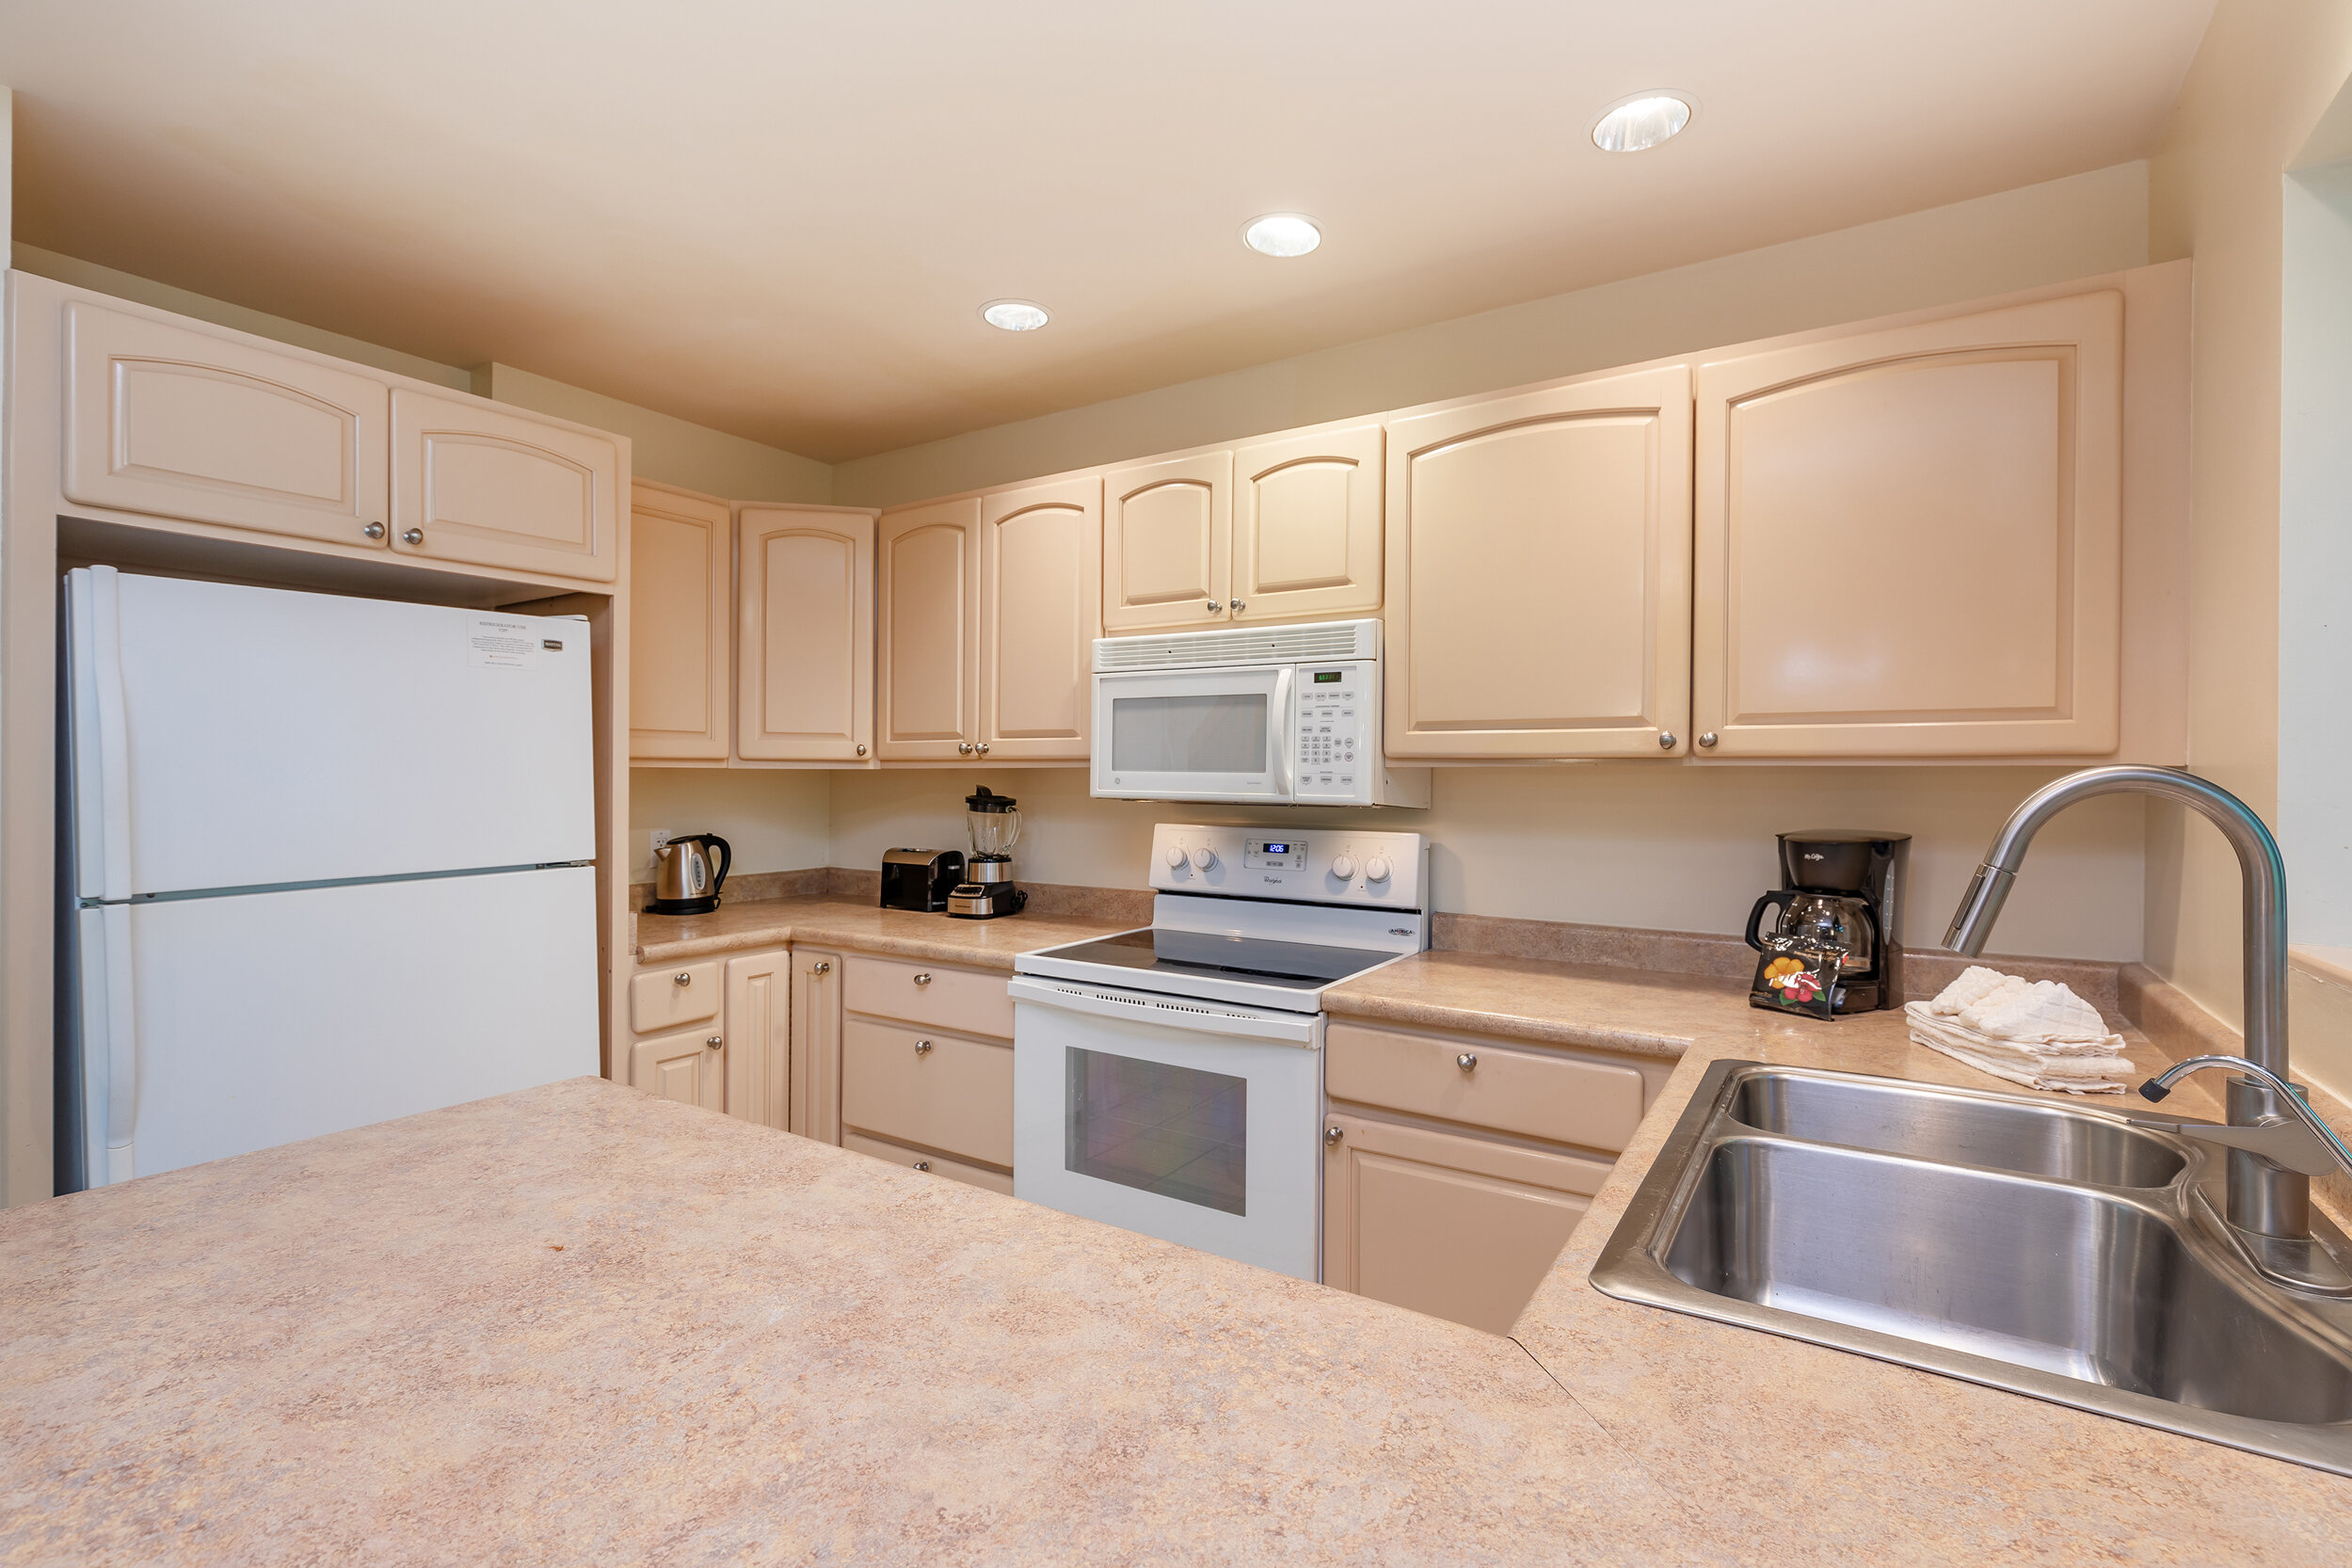 napili-gardens-maui-vacation-condos-ng1-07-kitchen.jpg